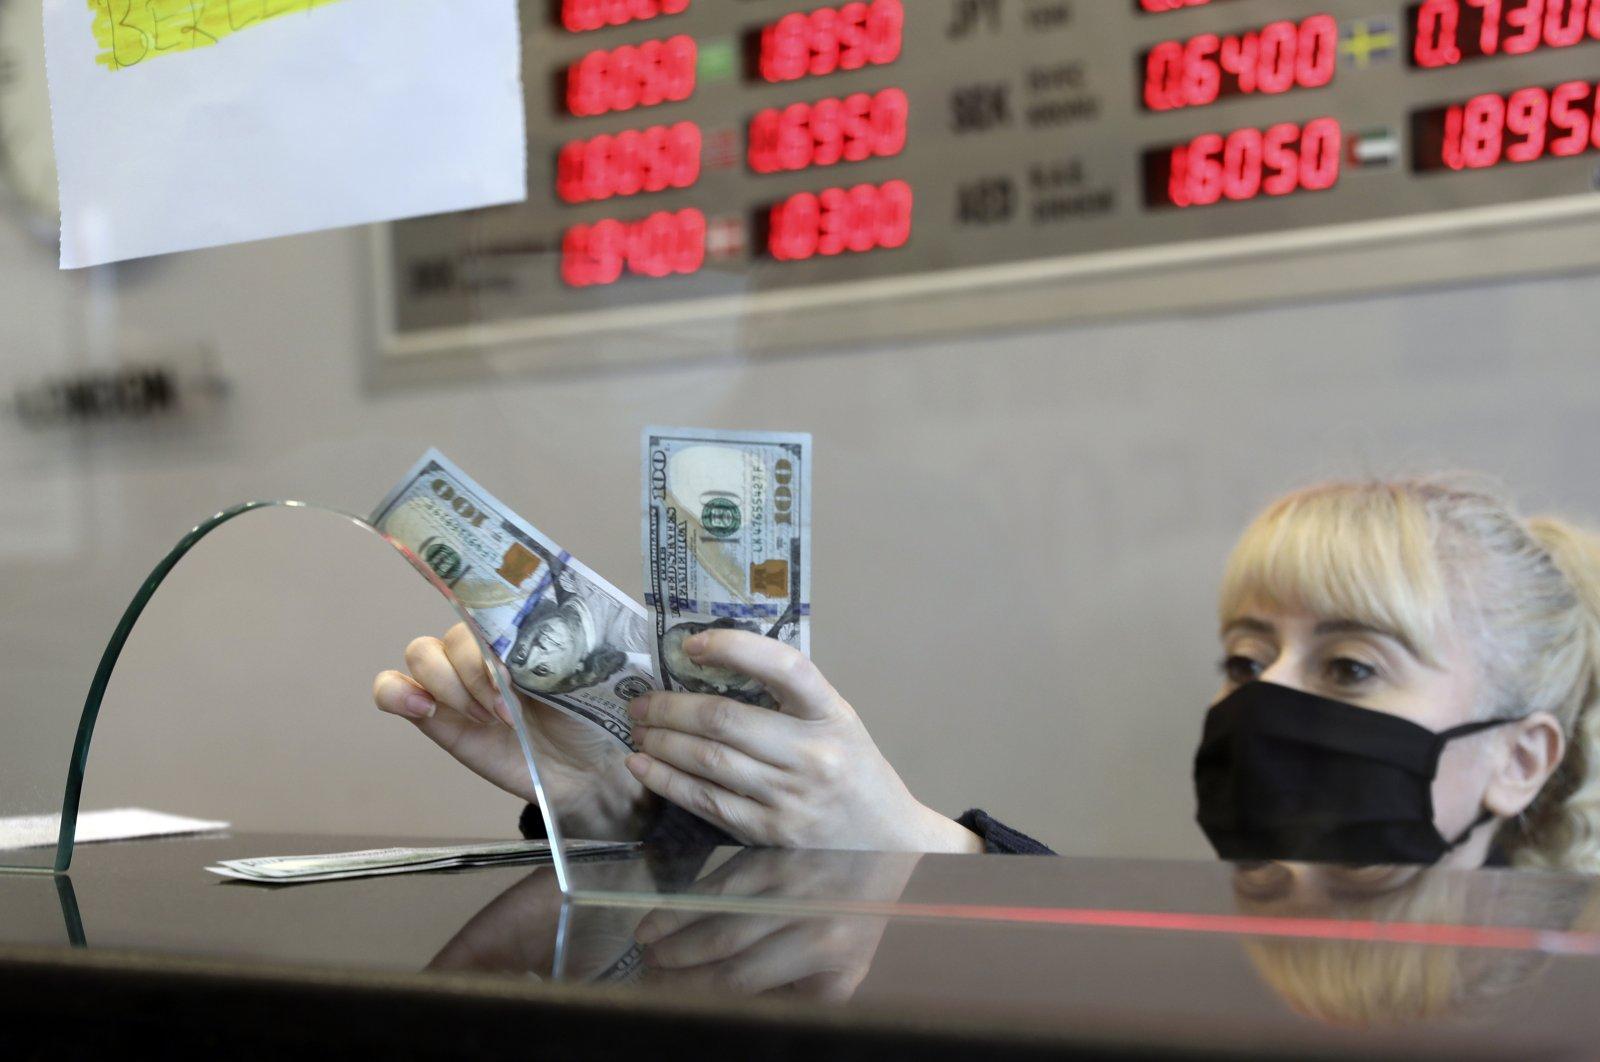 An official wearing a face mask for protection against the coronavirus exchanges a customer's Turkish liras for U.S. dollars at a currency exchange office, Ankara, Turkey, May 8, 2020. (AP Photo)